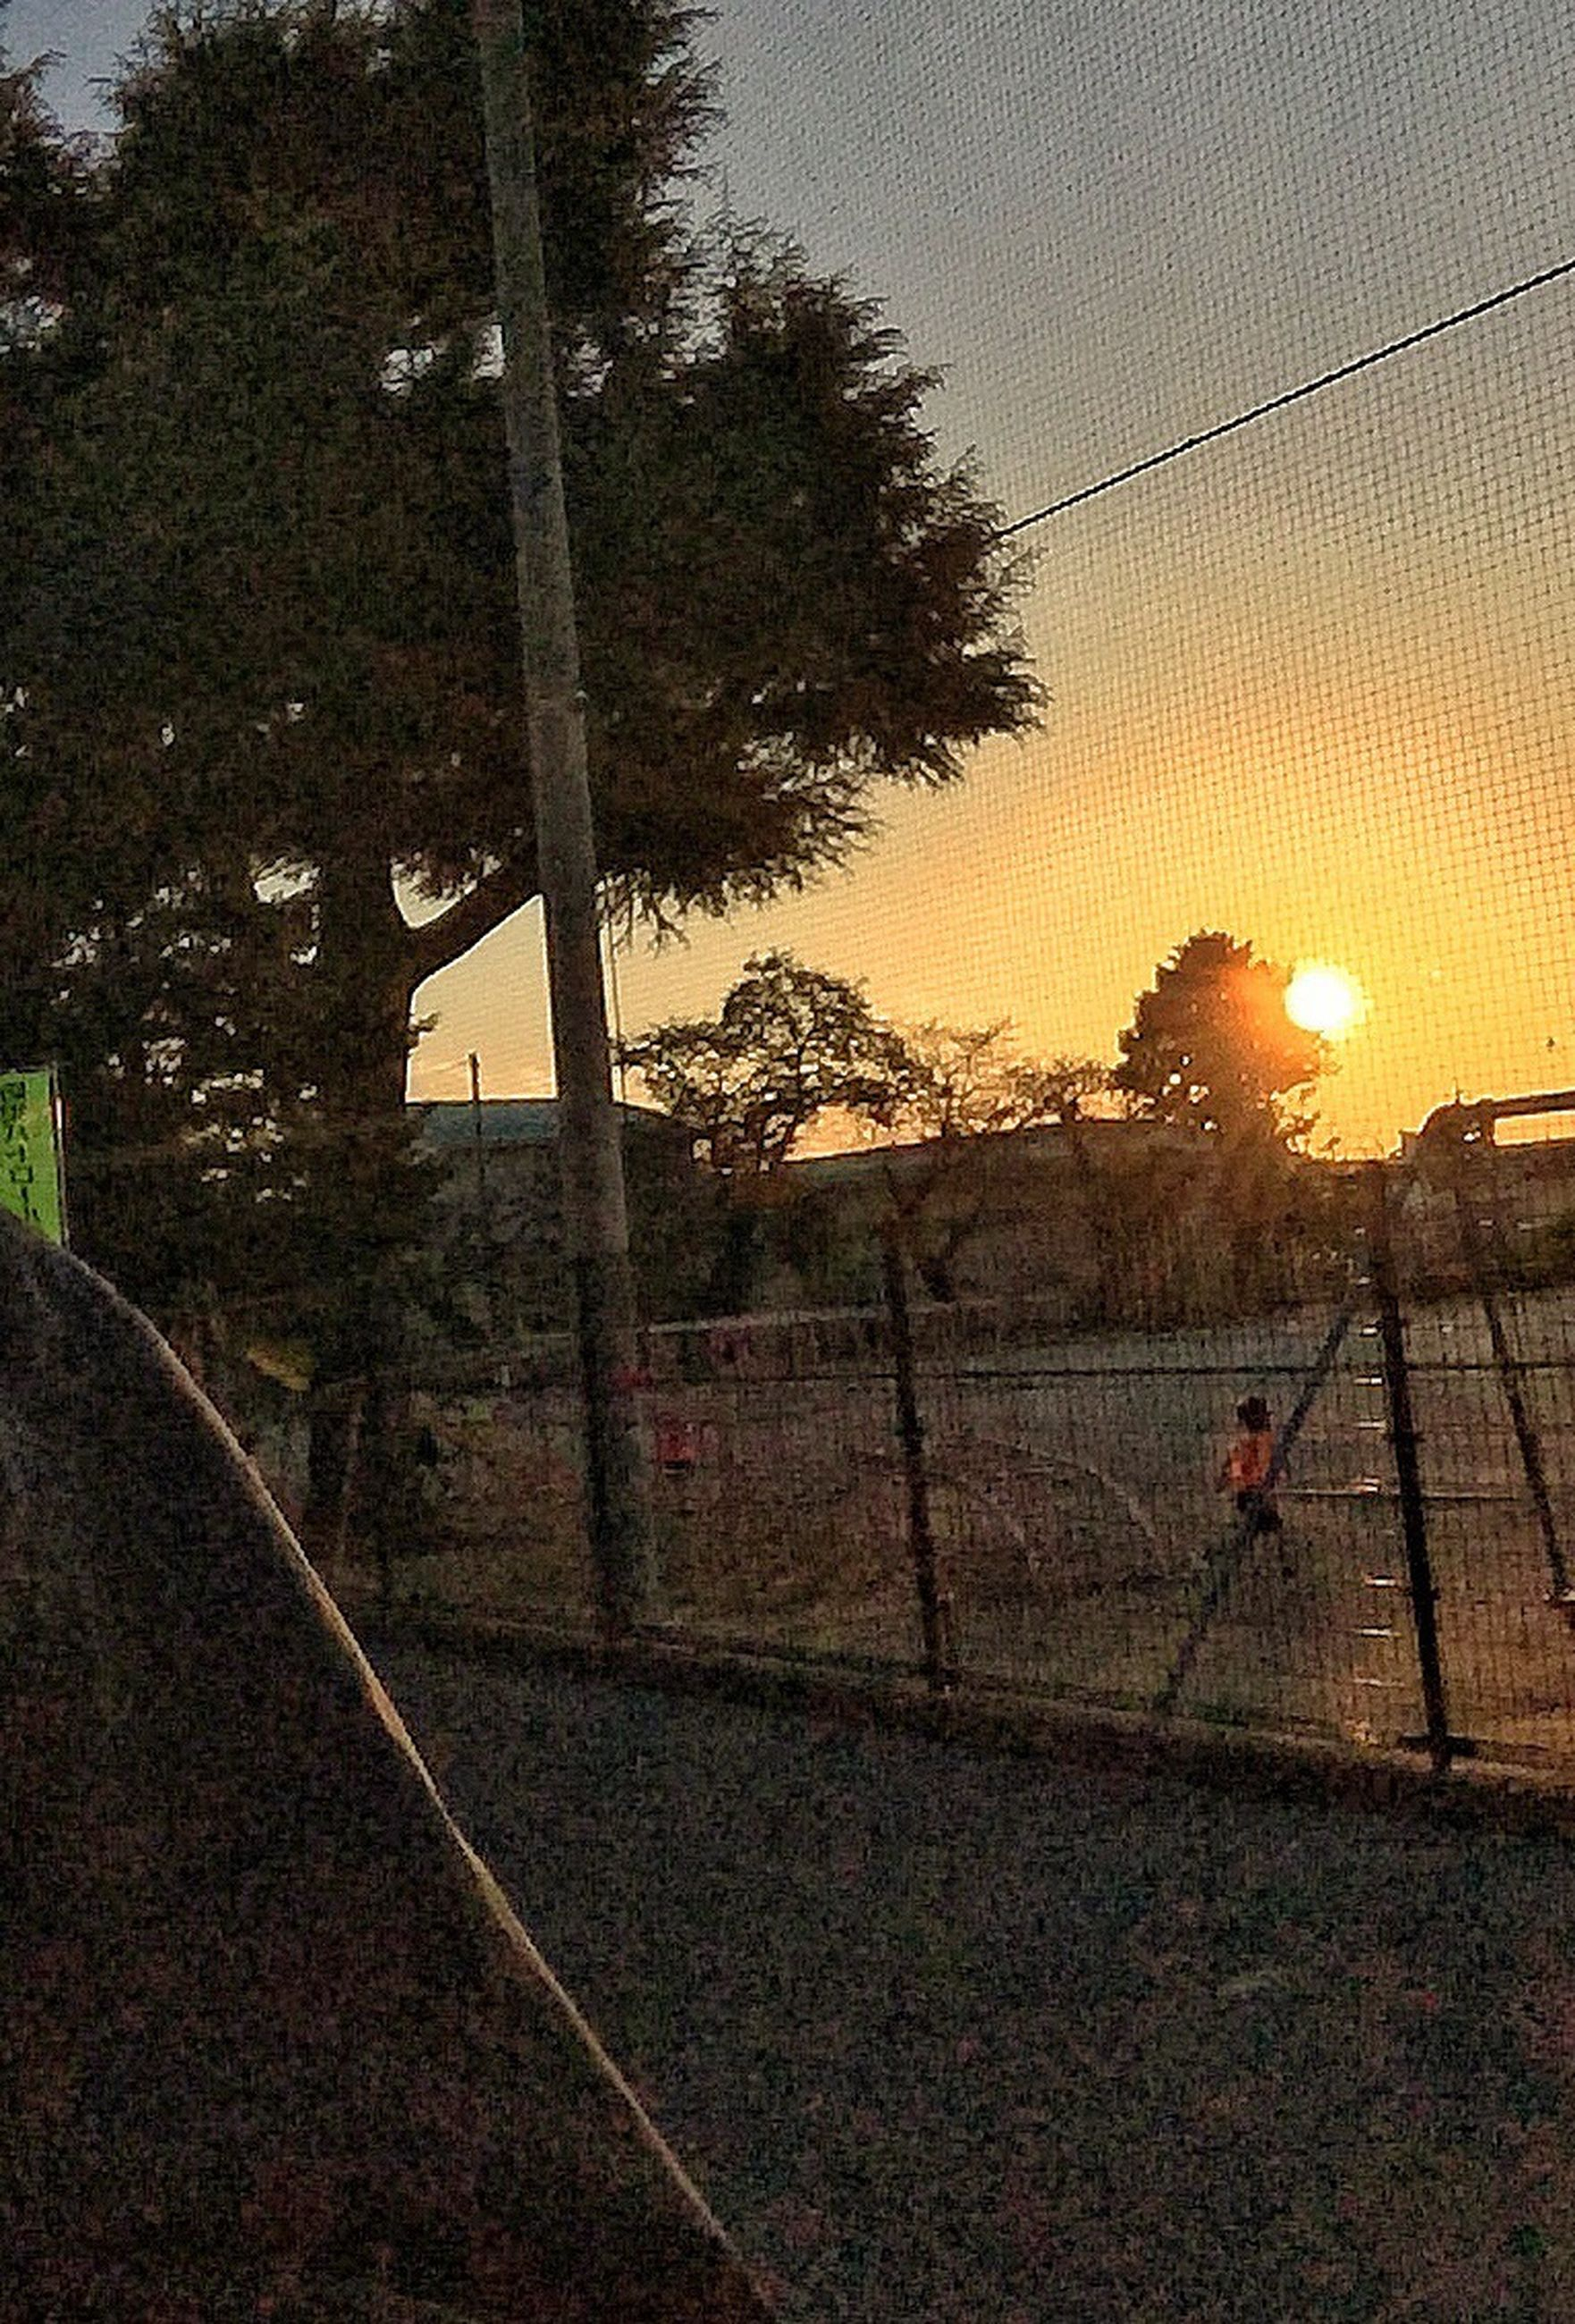 sunset, tree, transportation, sky, road, orange color, street, sunlight, built structure, building exterior, fence, architecture, street light, outdoors, land vehicle, sun, railing, nature, no people, chainlink fence